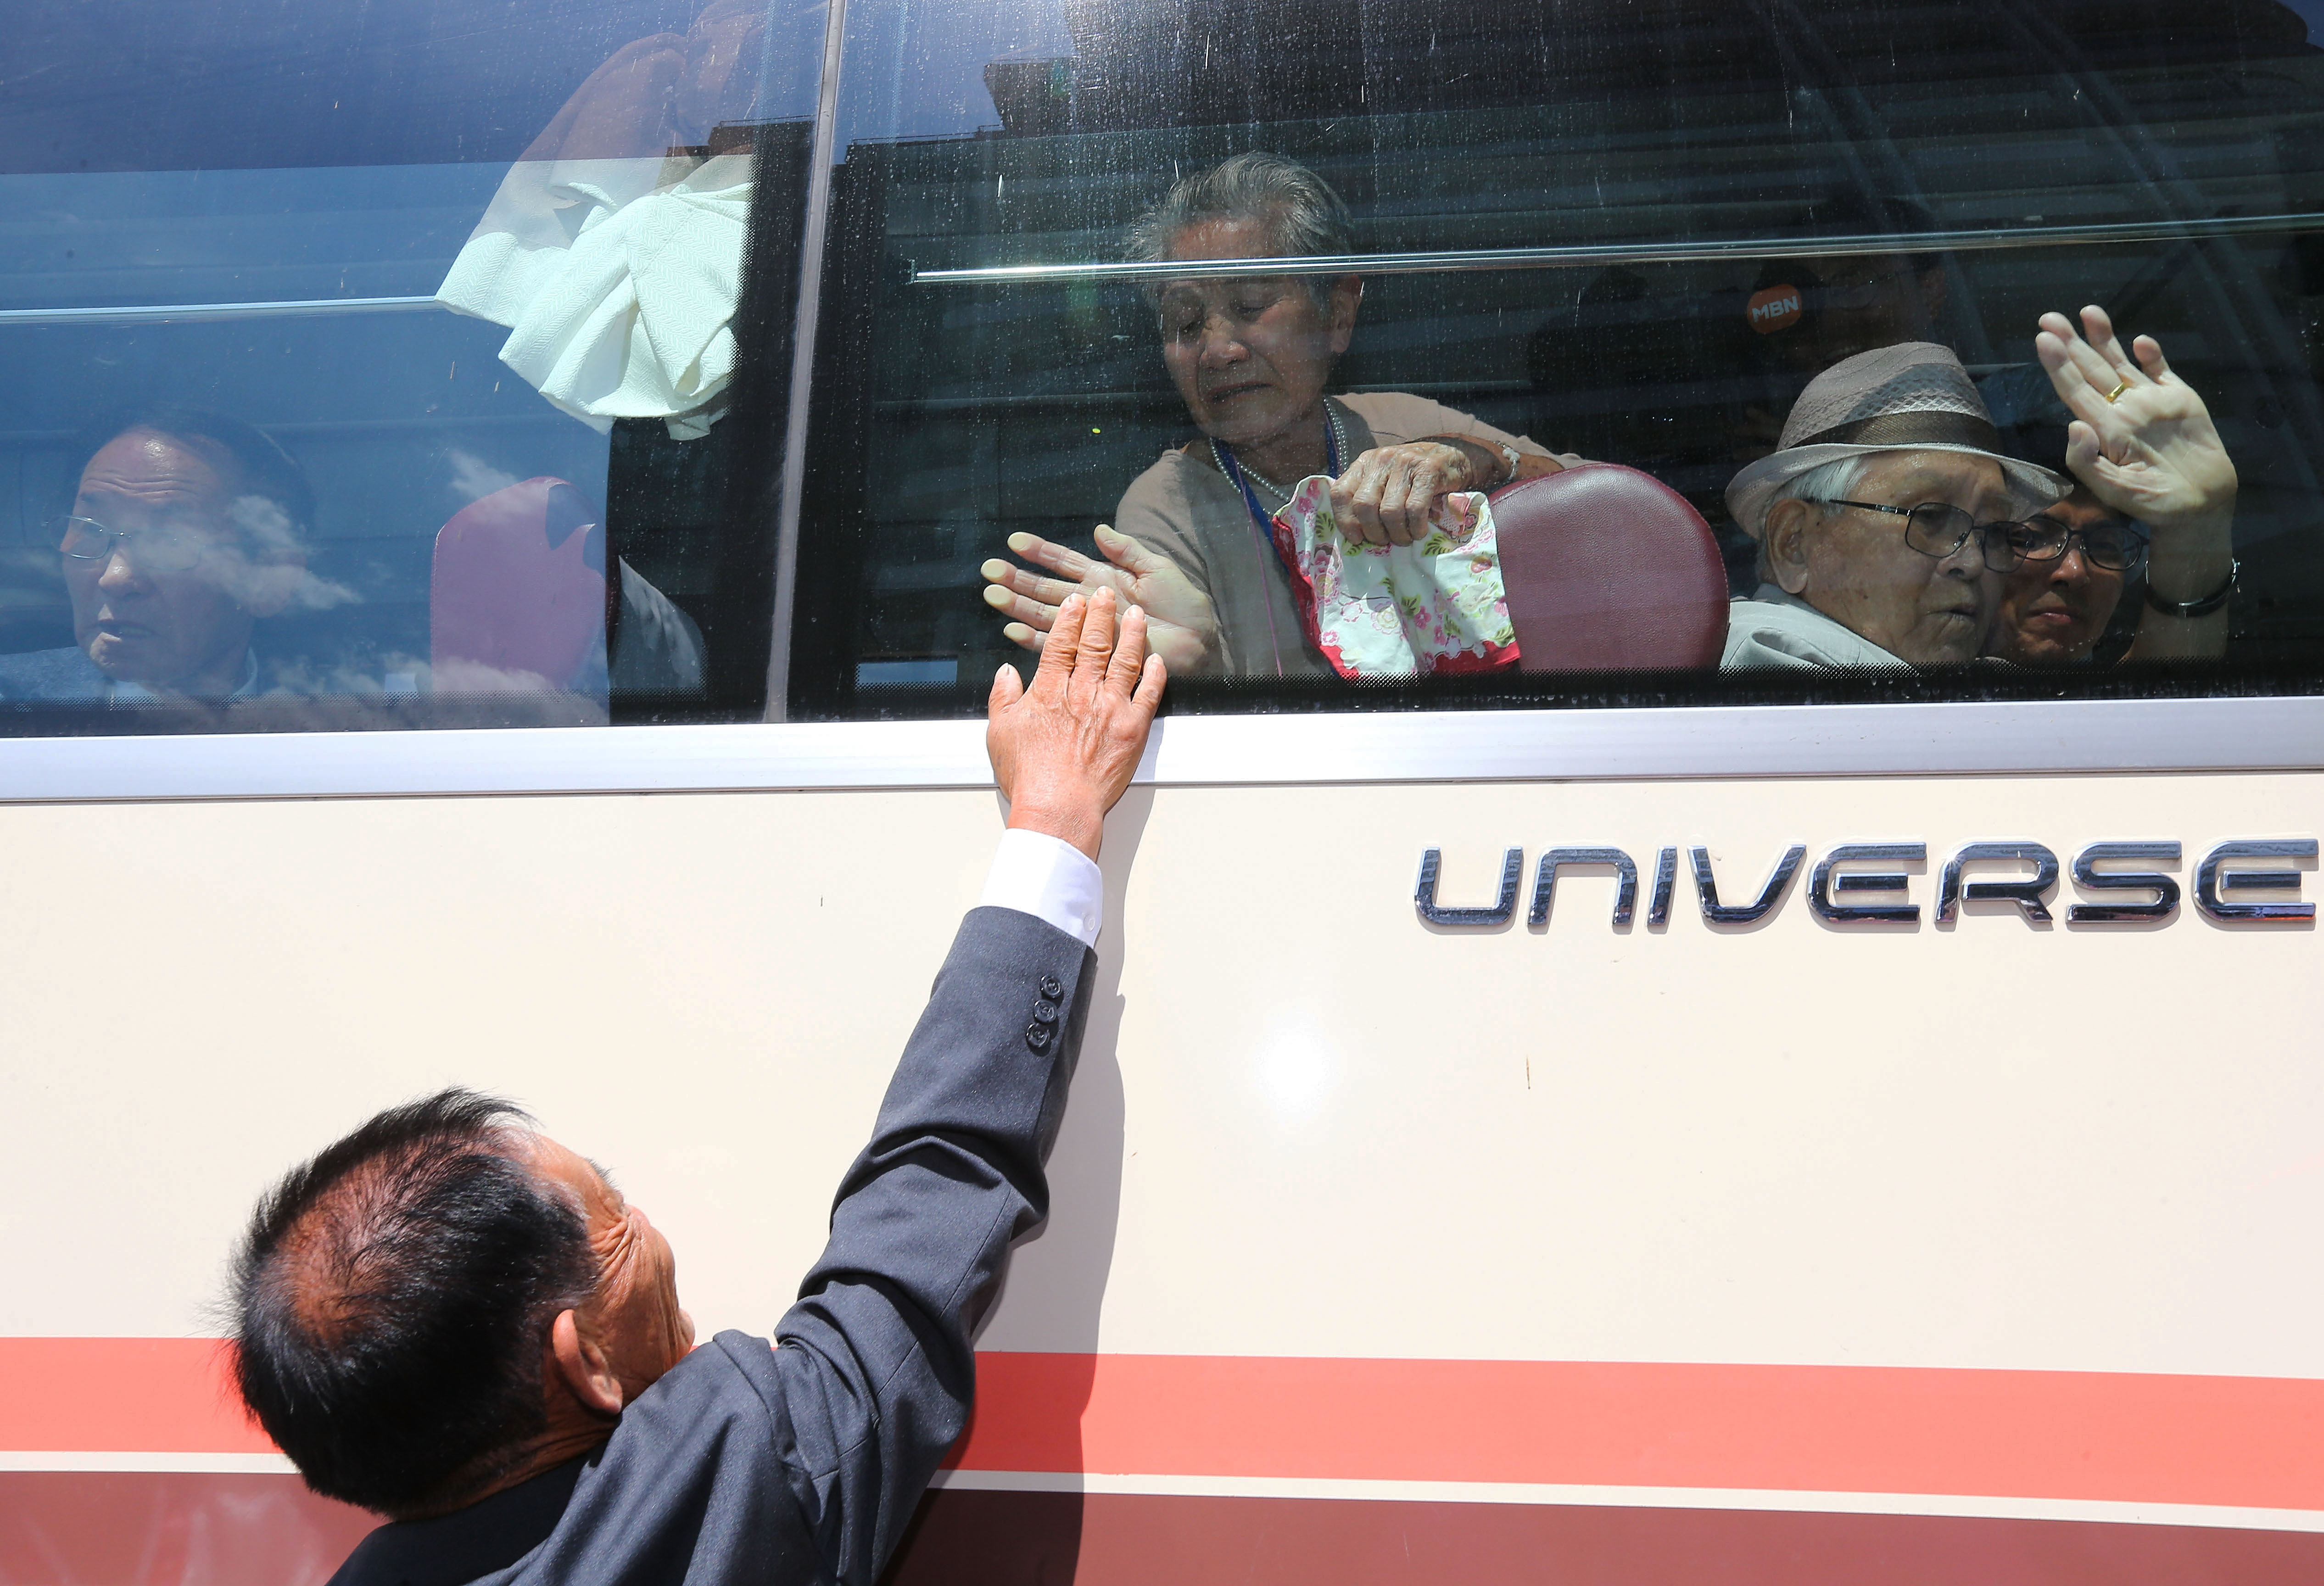 South Korean Lee Geum-Sum, 92 (in bus) waves to her North Korean son Lee Sung-Chul, 71, at the end of a three-day family reunion meeting in Mount Kumgang, North Korea on Aug. 22, 2018.